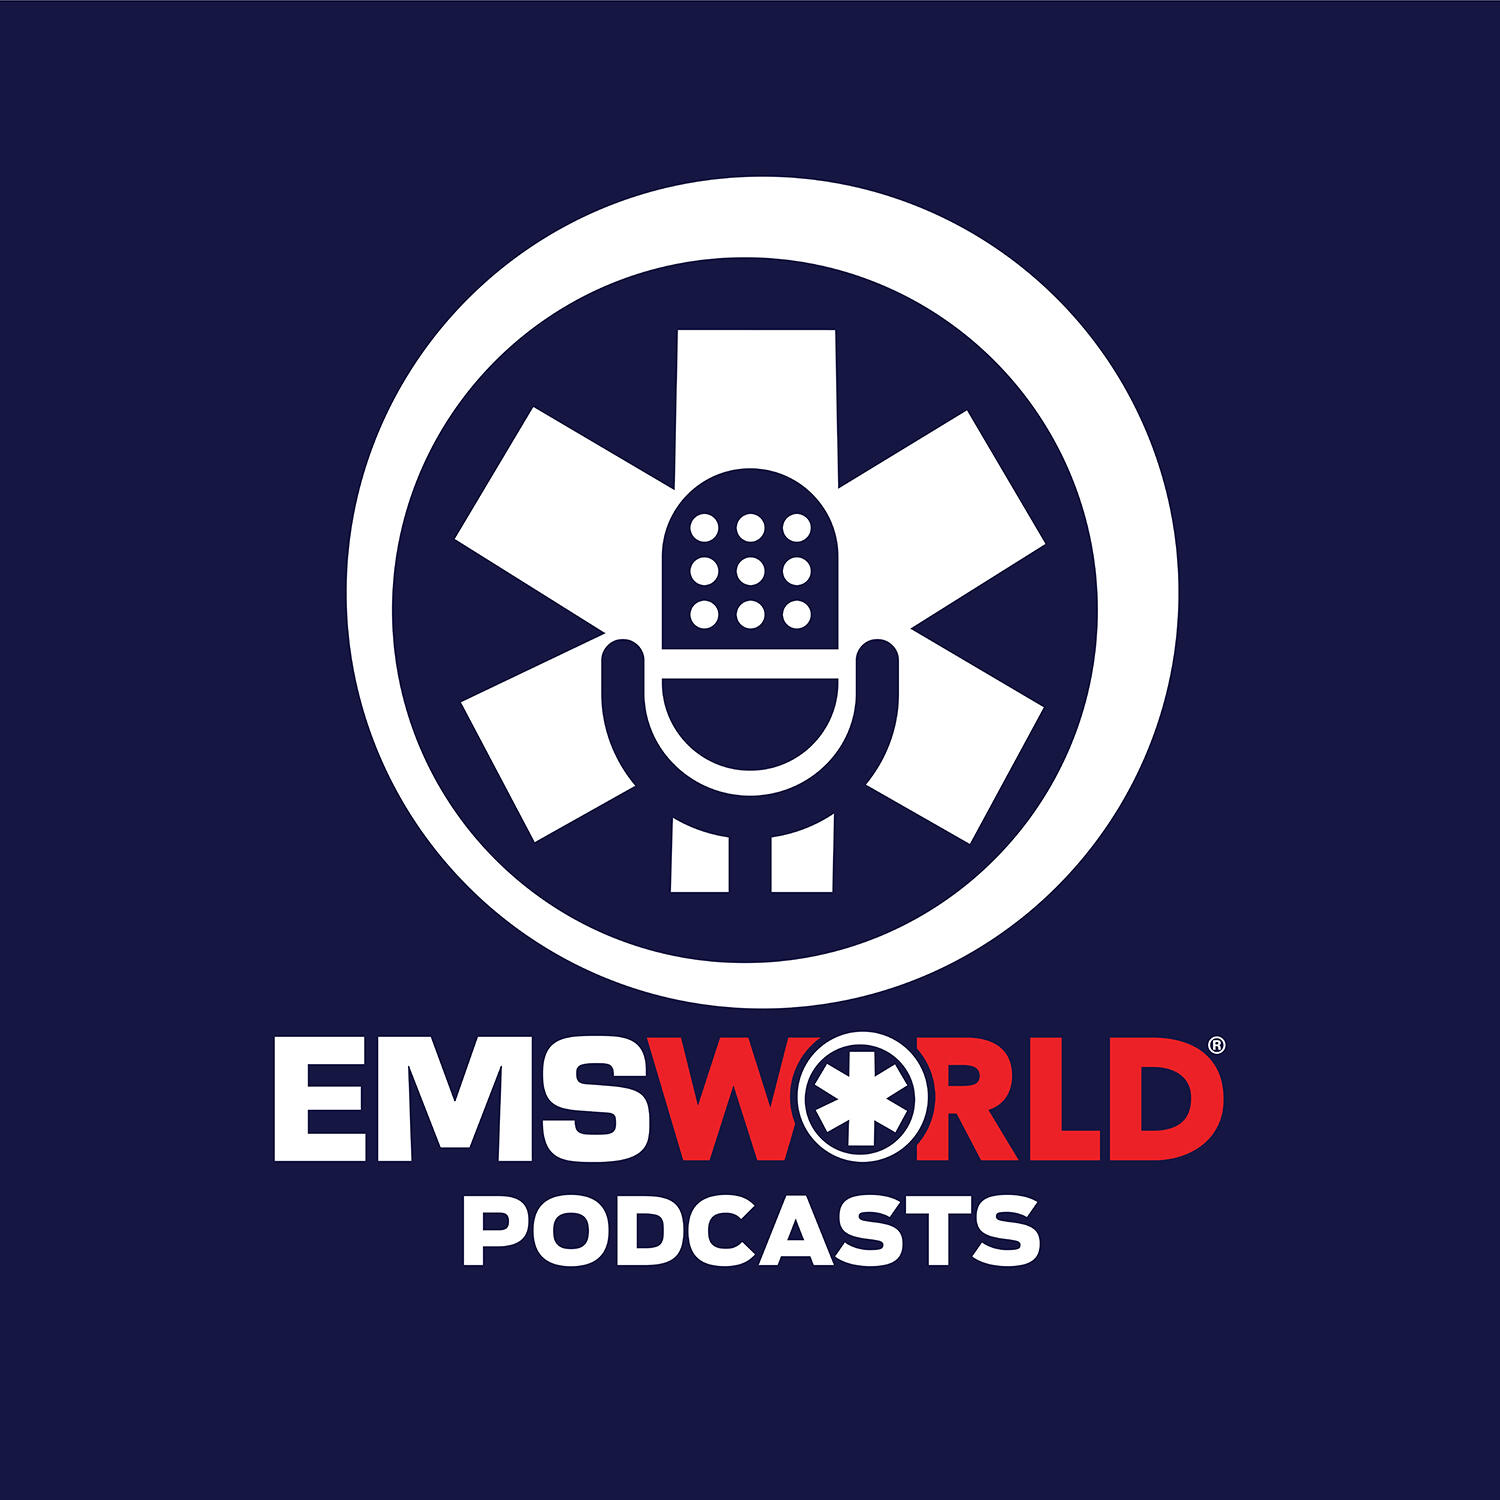 EMS World Podcasts